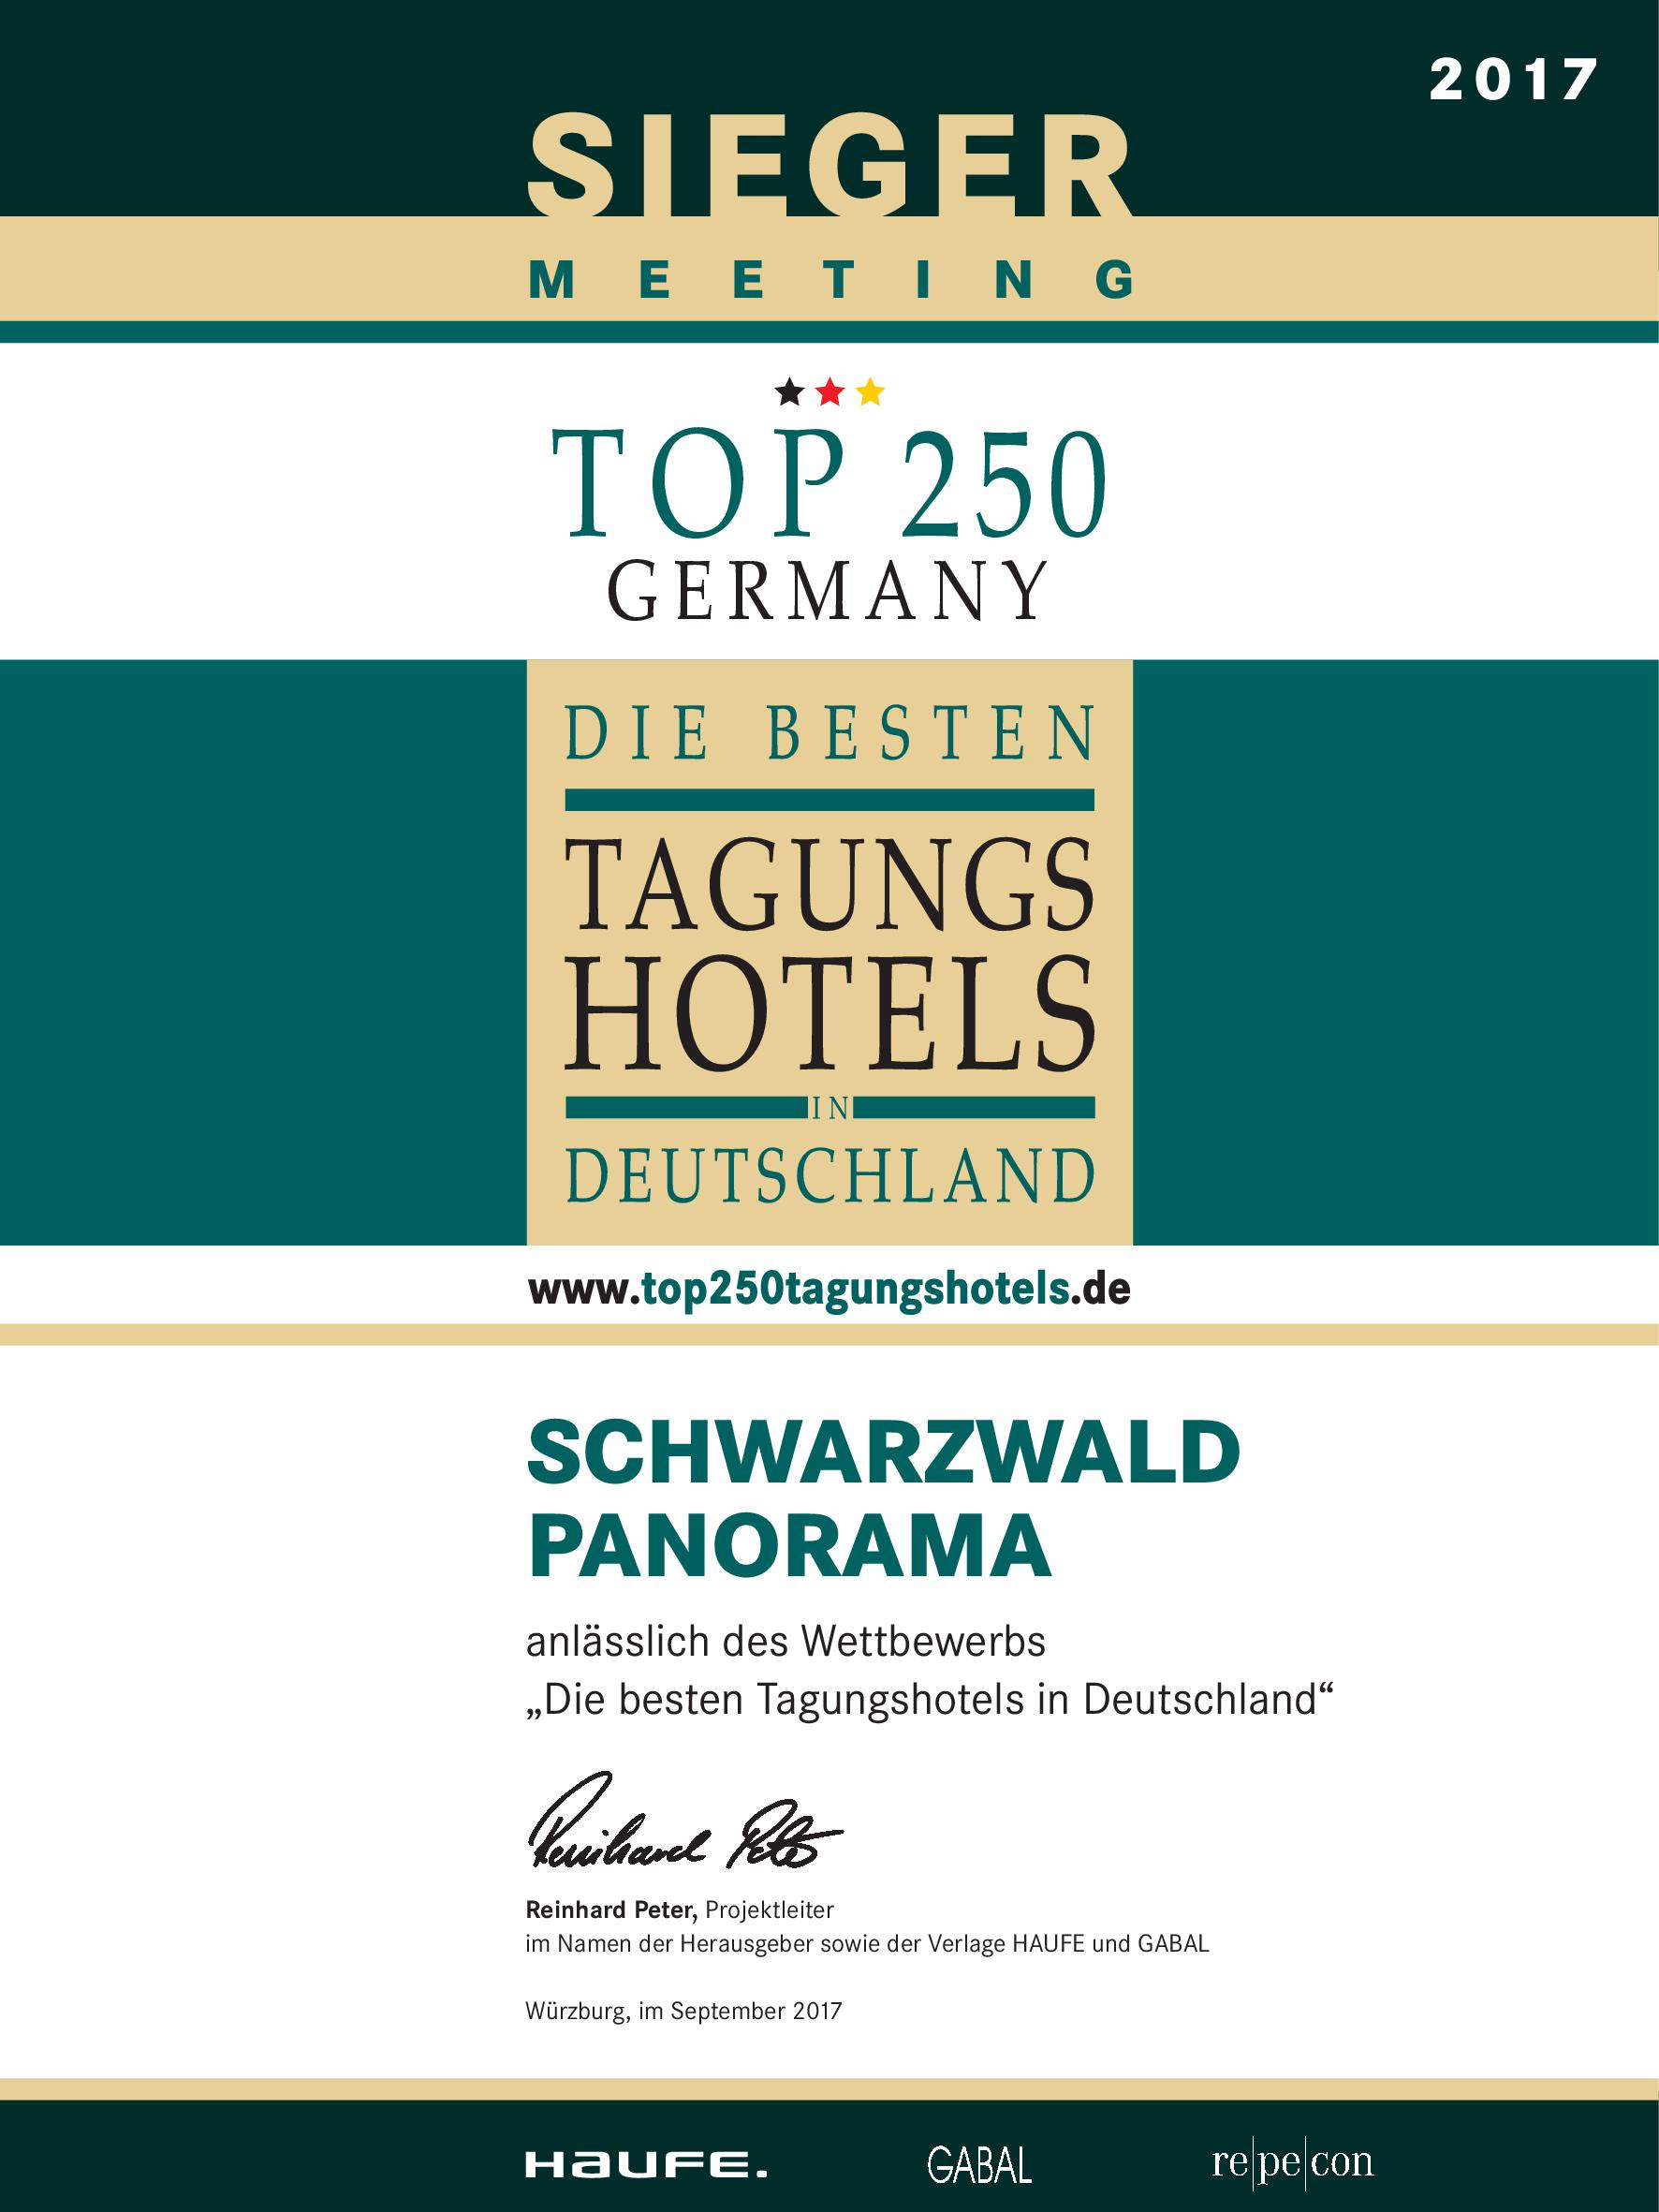 top250-conference-hotels